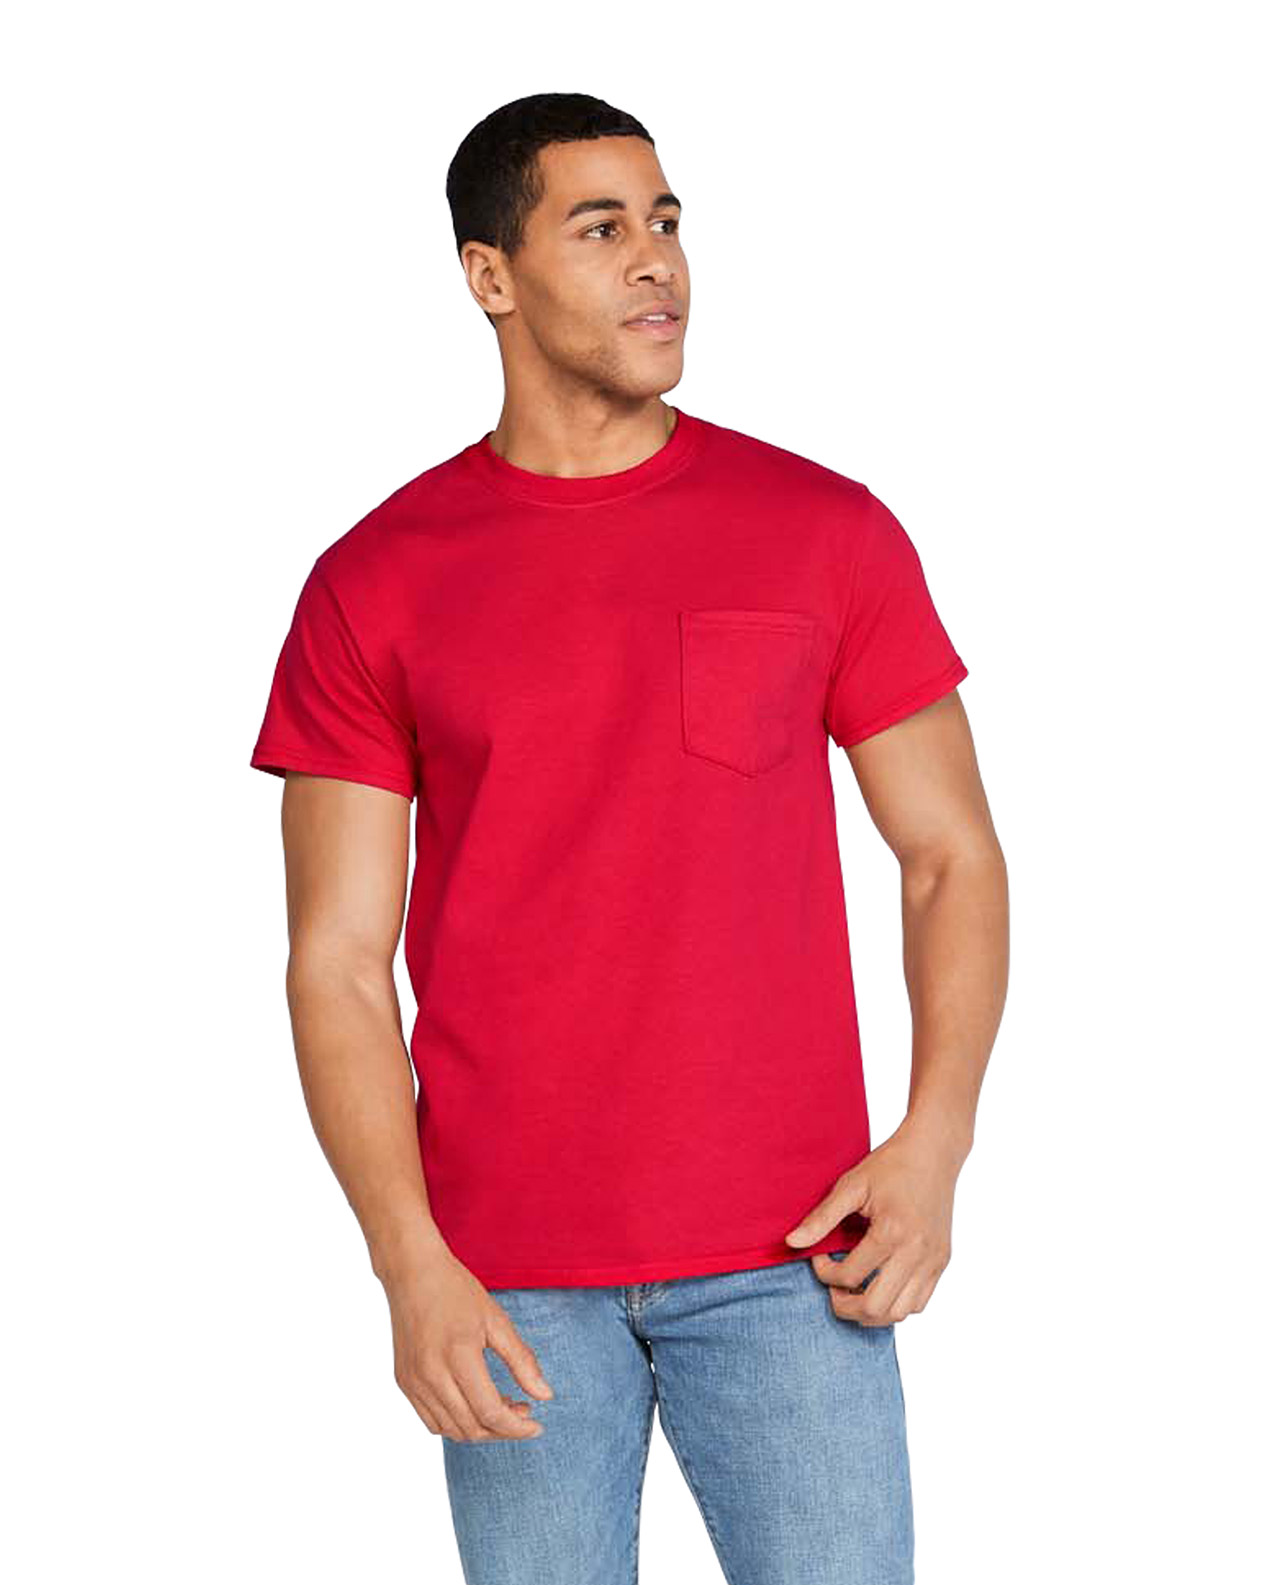 e3072413 2300 | Gildan® Ultra Cotton® | 6.0 oz/yd² | Adult T-Shirt with ...